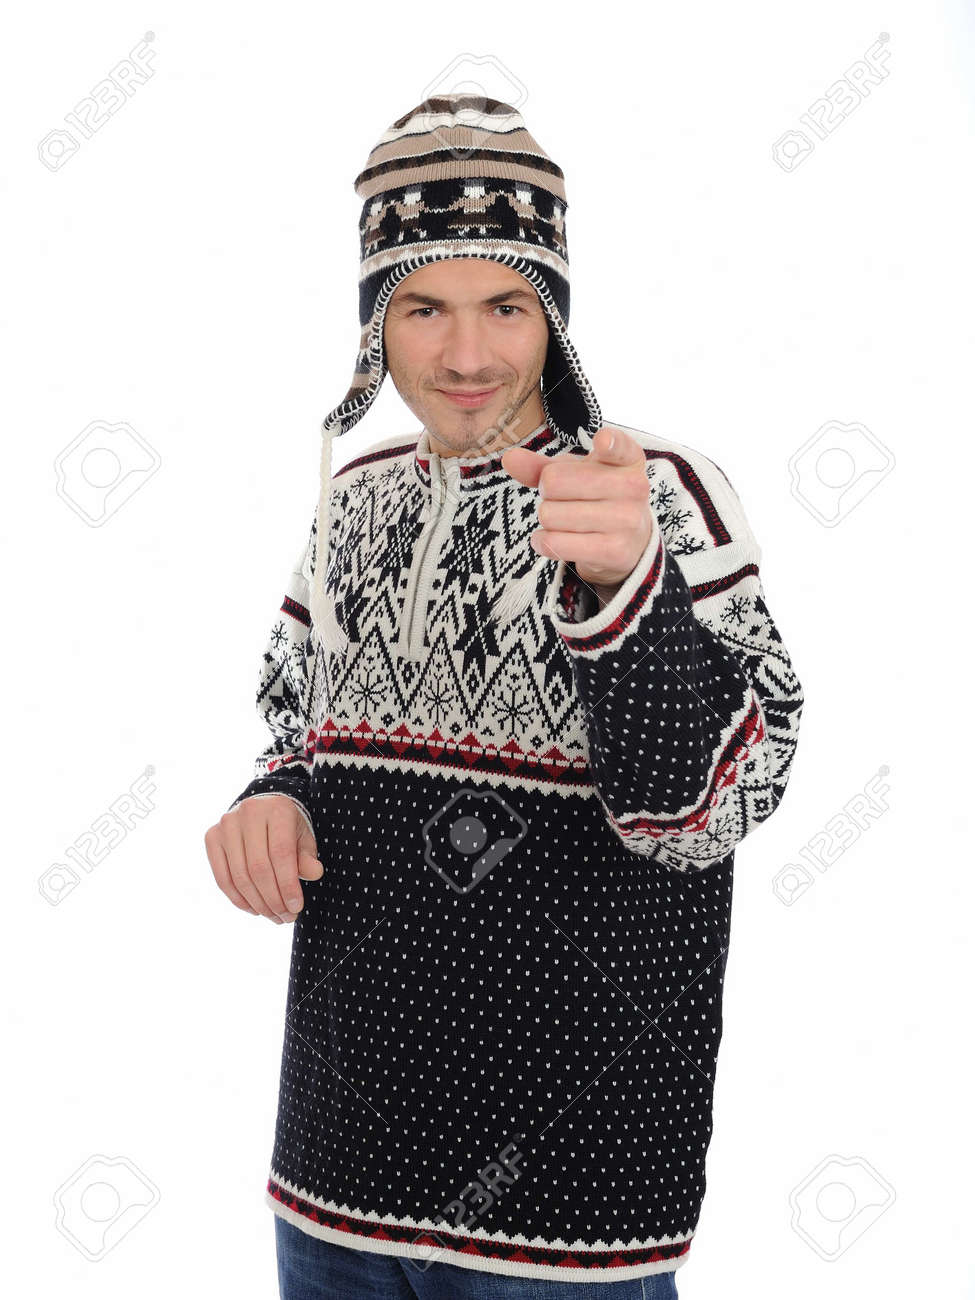 Funny winter man in warm hat and clothes smiling. isolated on white background Stock Photo - 8328370